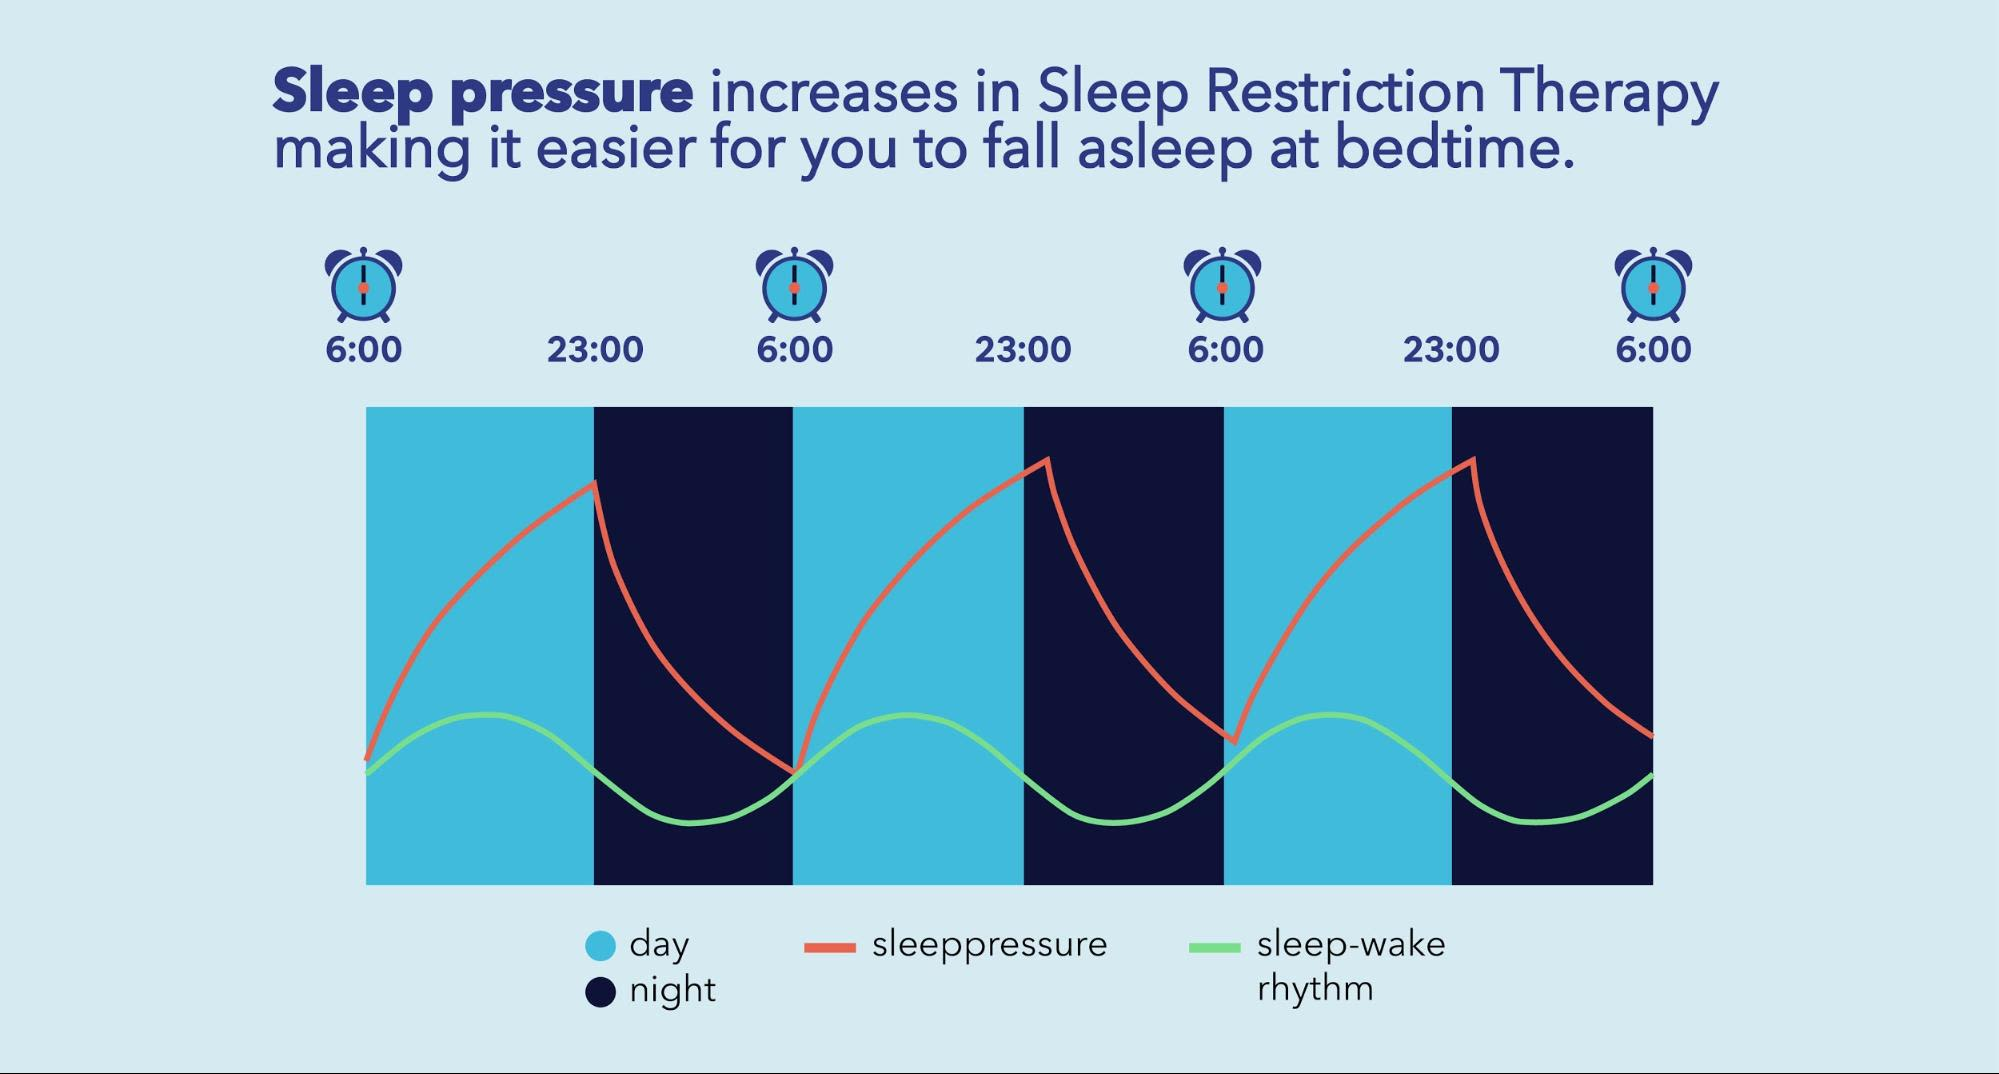 Sleep pressure increases in Sleep Restriction Therapy making it easier for you to fall asleep at bedtime.